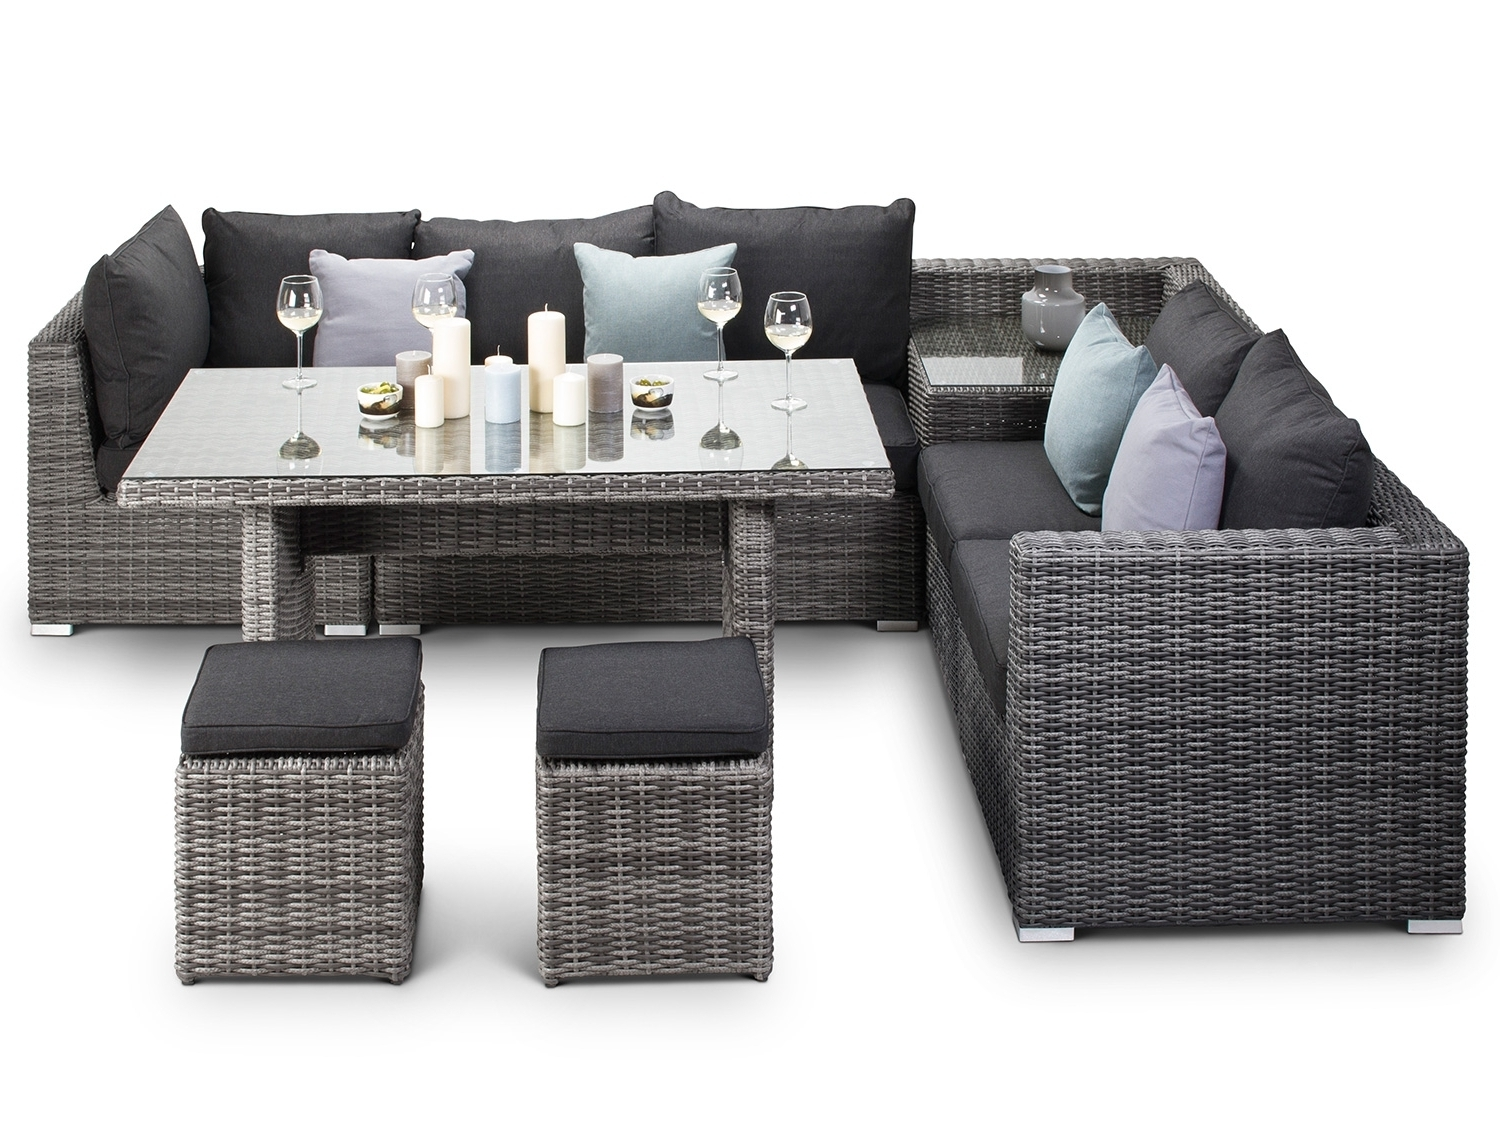 Rattan Dining Tables Inside 2017 Verona Grey Rattan Corner Sofa With Dining Table (View 13 of 25)